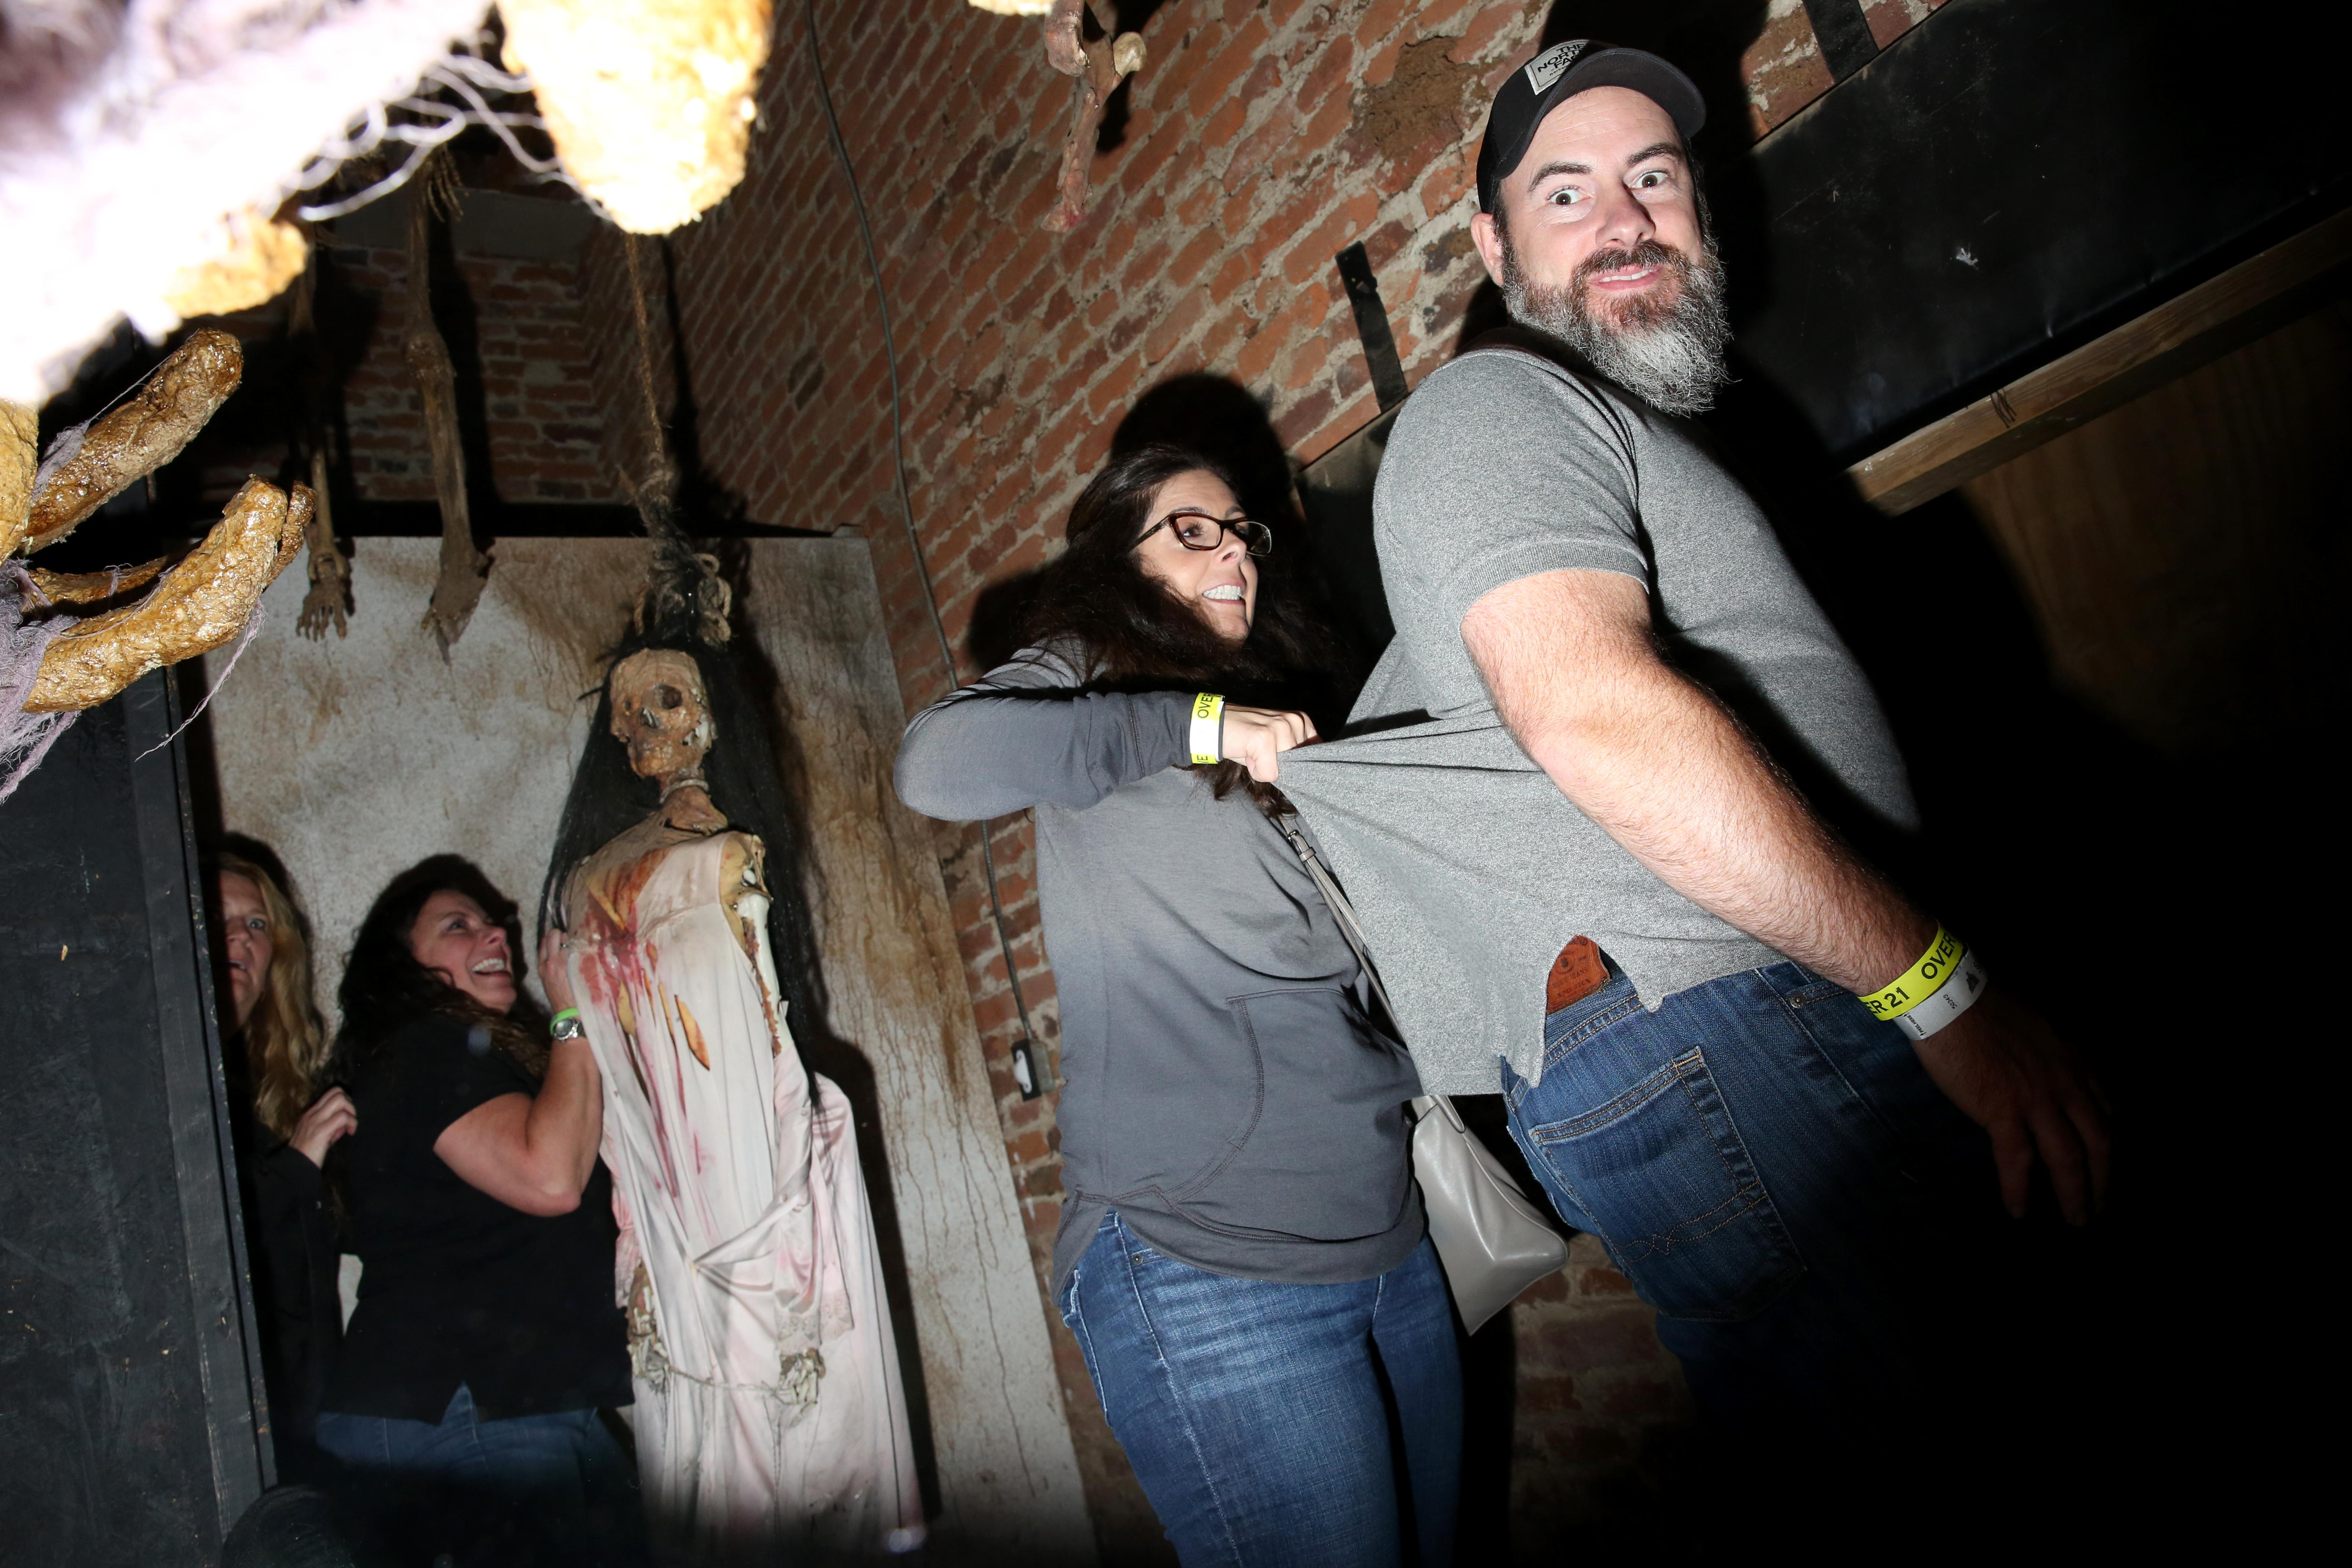 There's nothing like a good scare to get you in the mood for Halloween and Shocktober, a haunted house in Leesburg, VA, can definitely deliver. However, even if jump scares aren't for you, watching people get scared is hilarious - here's what it looks like when things go bump in the night. (Amanda Andrade-Rhoades/DC Refined)